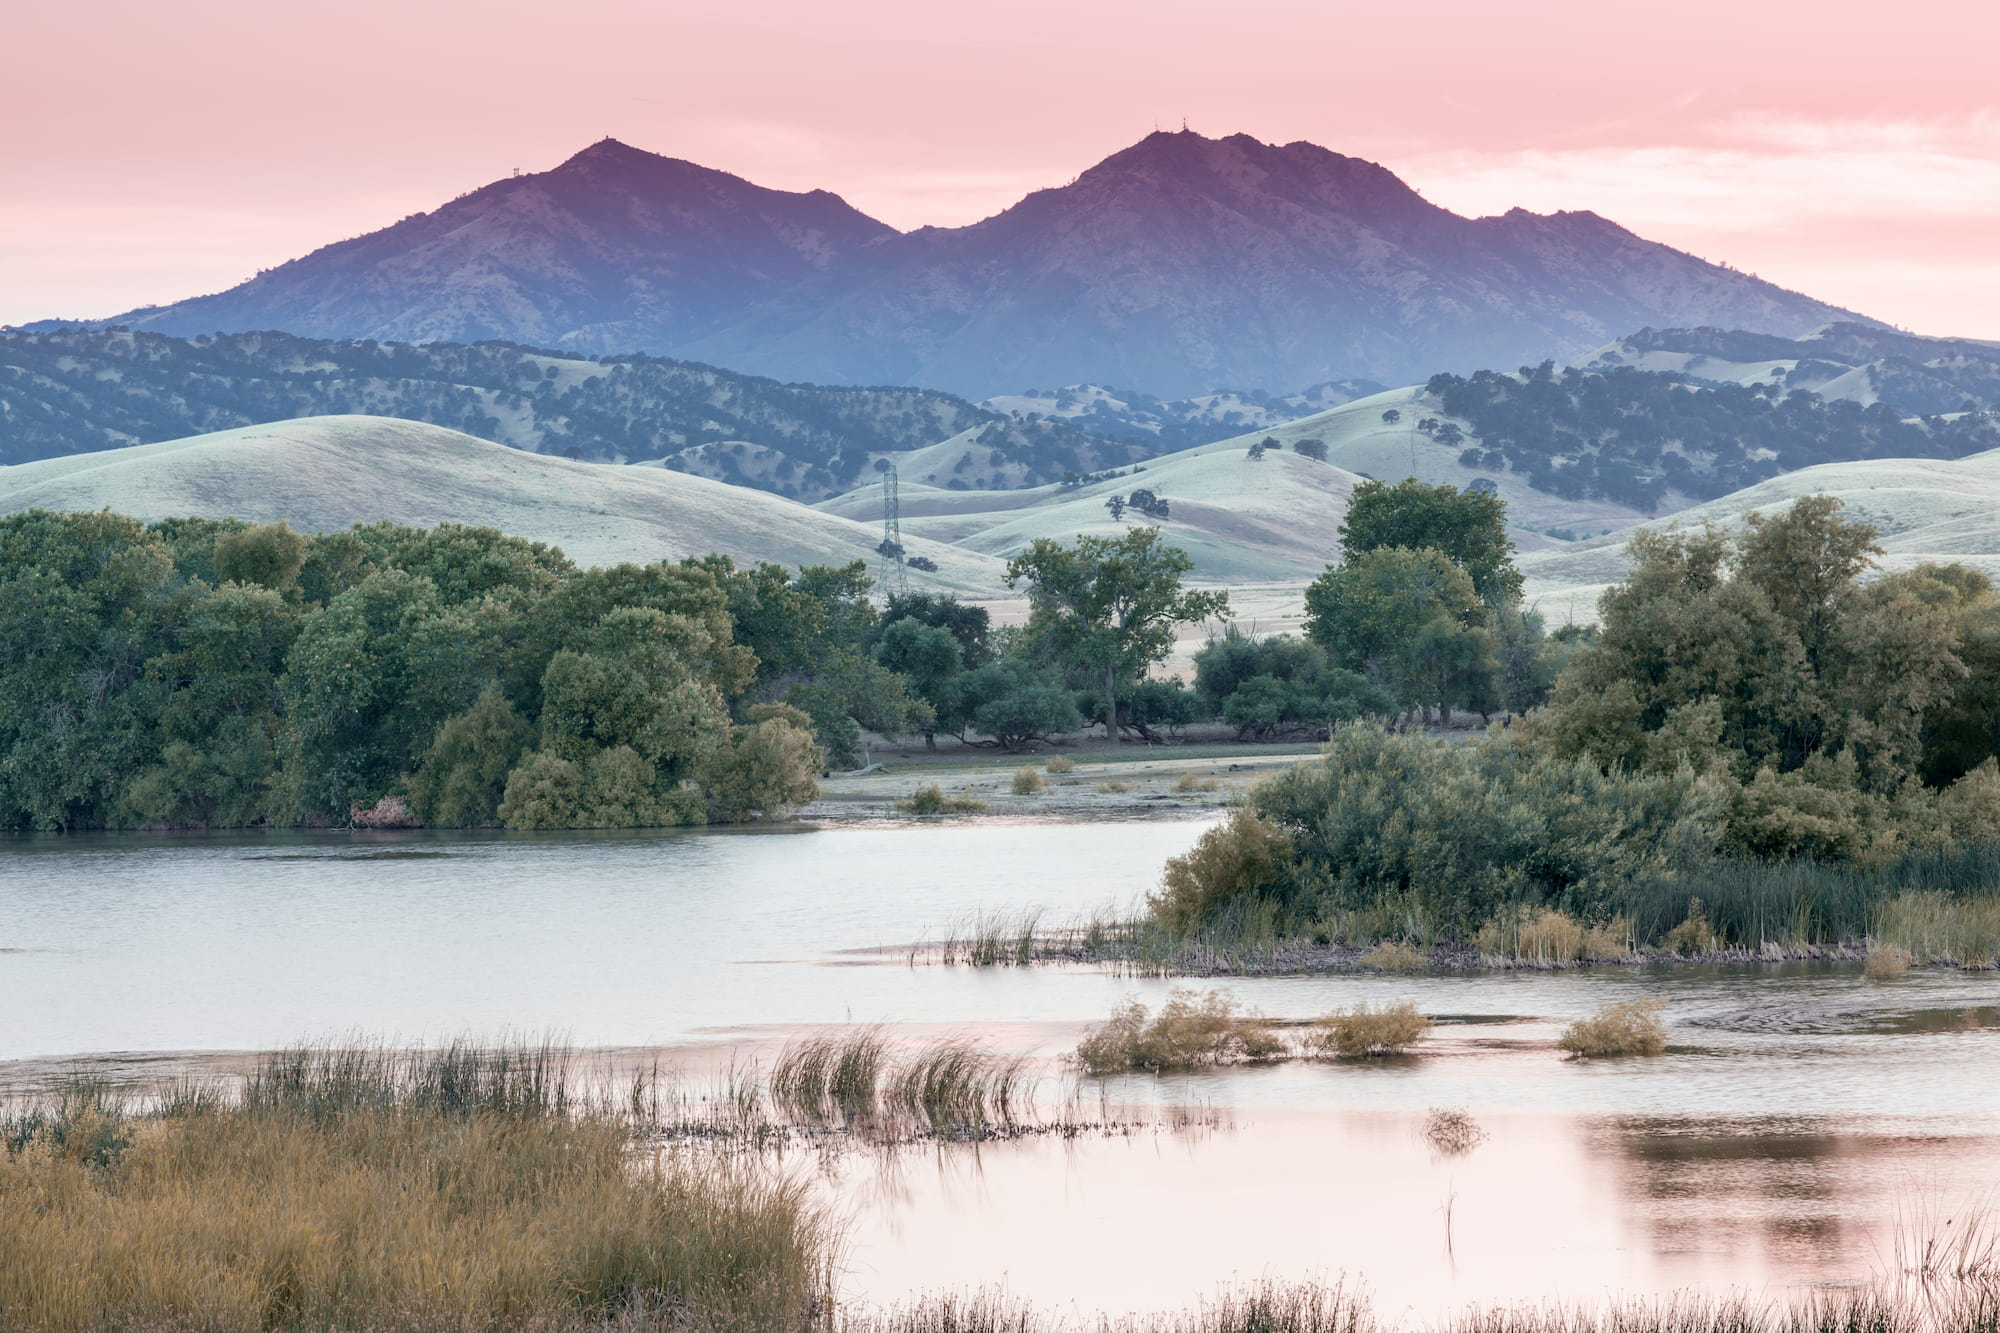 Mt. Diablo at sunset from banks of a waterfront